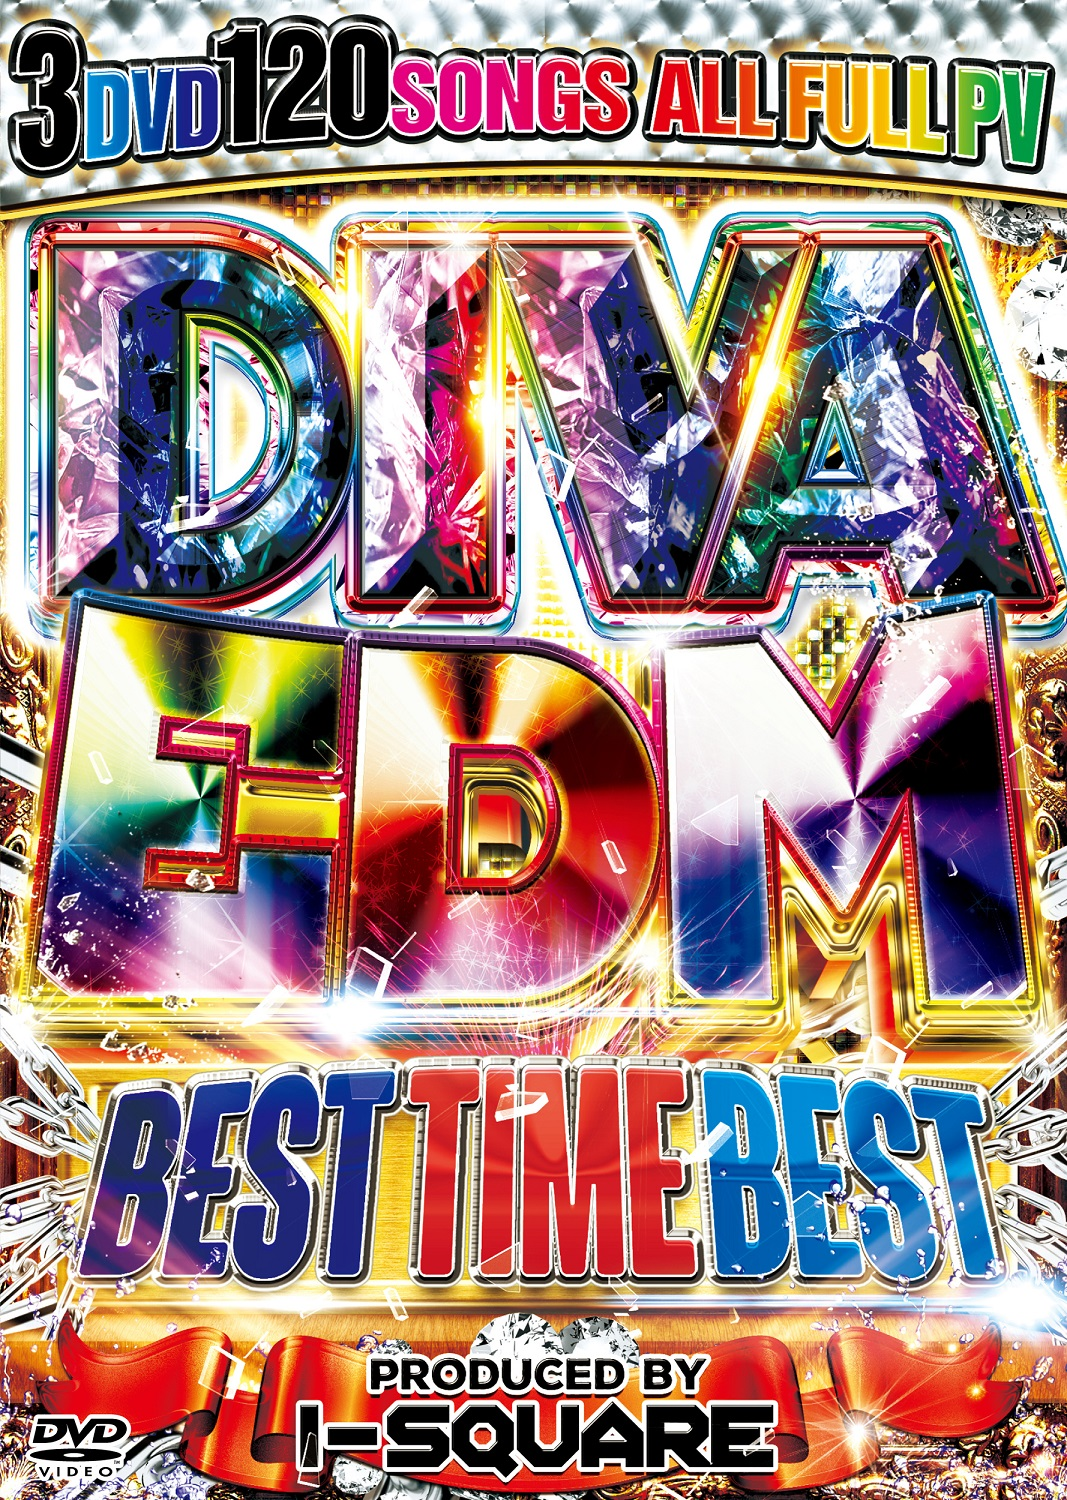 【3組】 DIVA EDM BEST TIME BEST / I-SQUARE  【[国内盤MIX DVD】